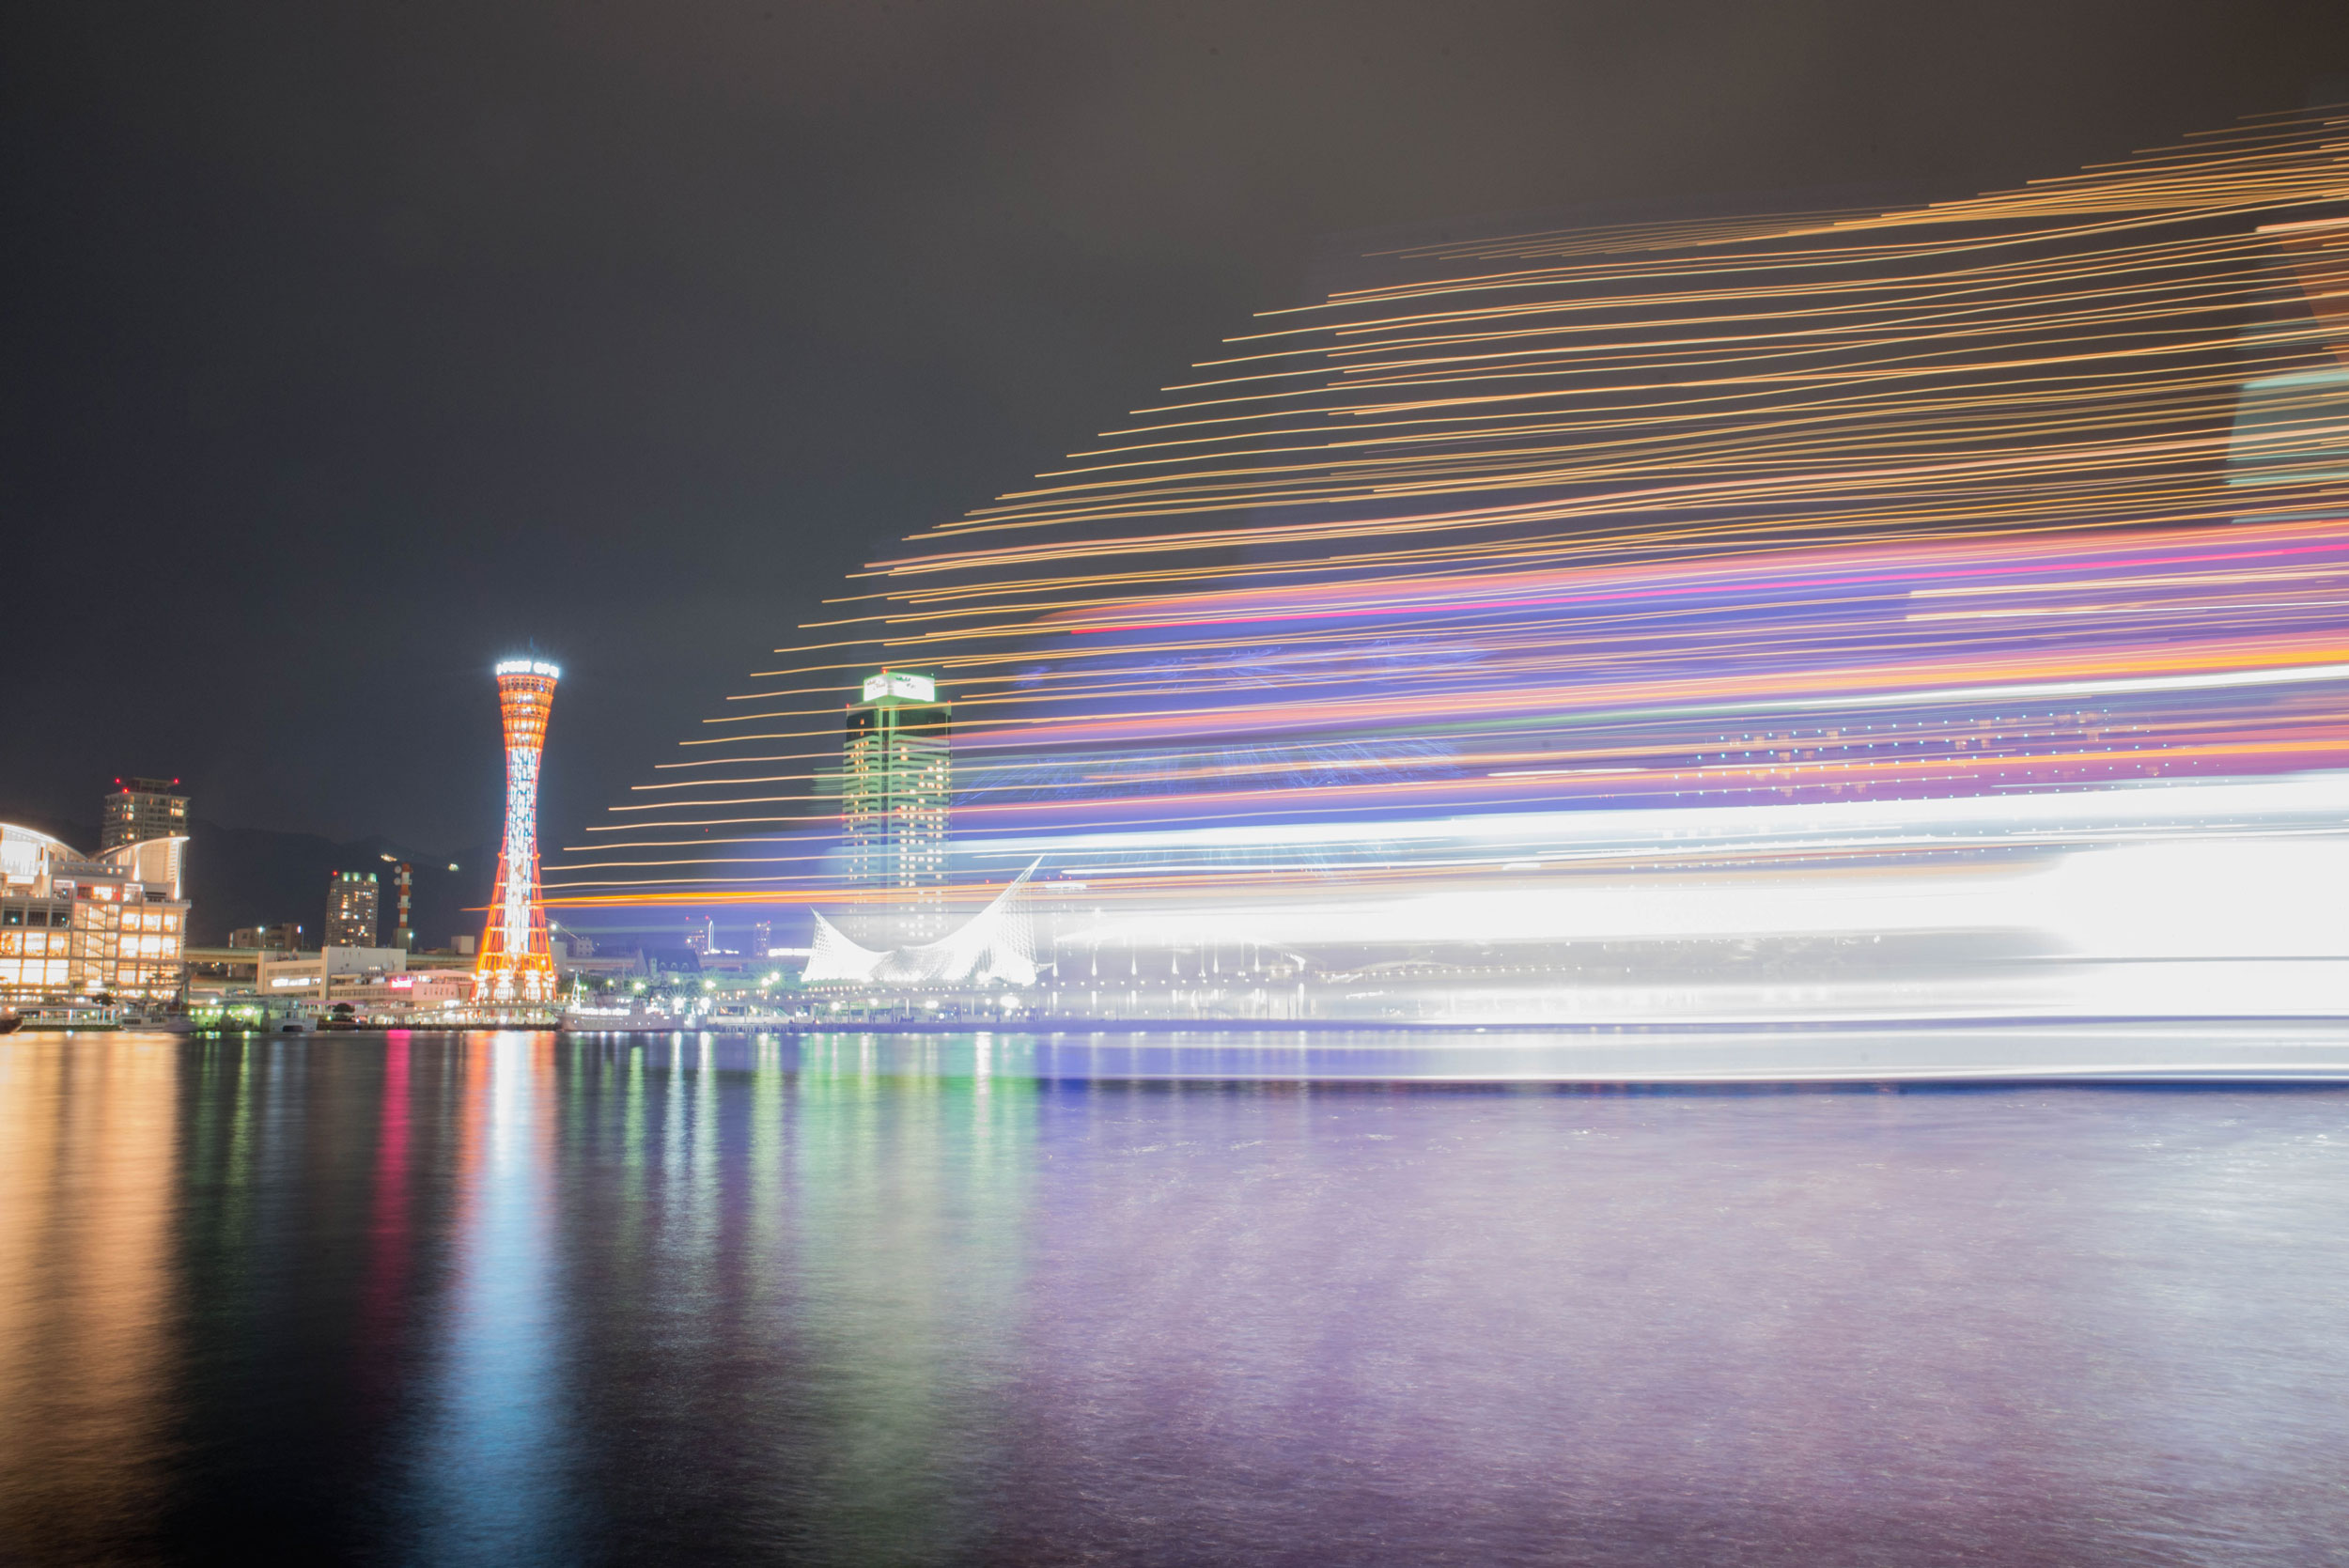 A passing boat creates light trails at the Port of Kobe